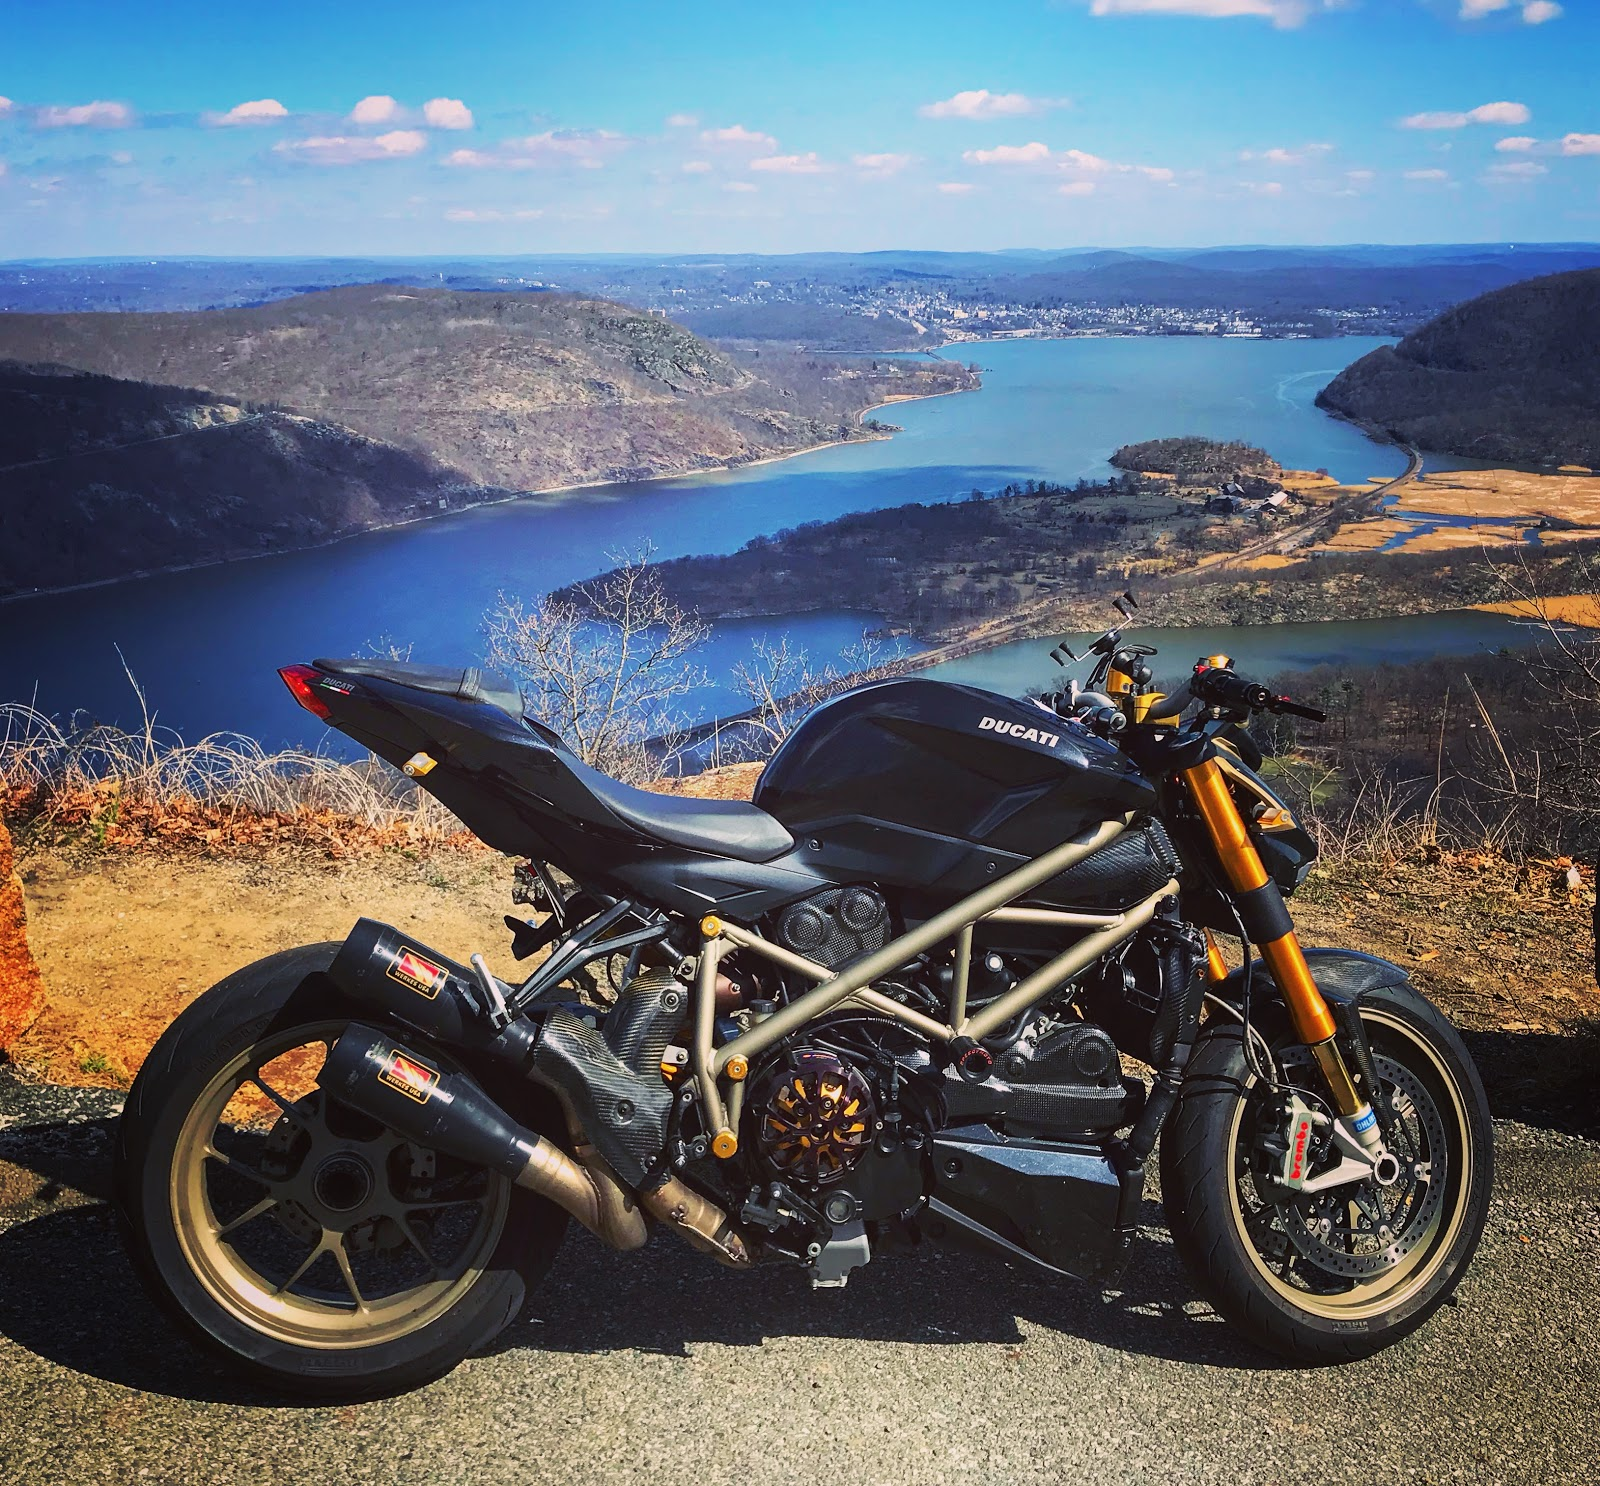 Tigh Loughhead of GothamDOC's StreetfighterR: DUCATI Streetfighters 1198 Custom Superbike